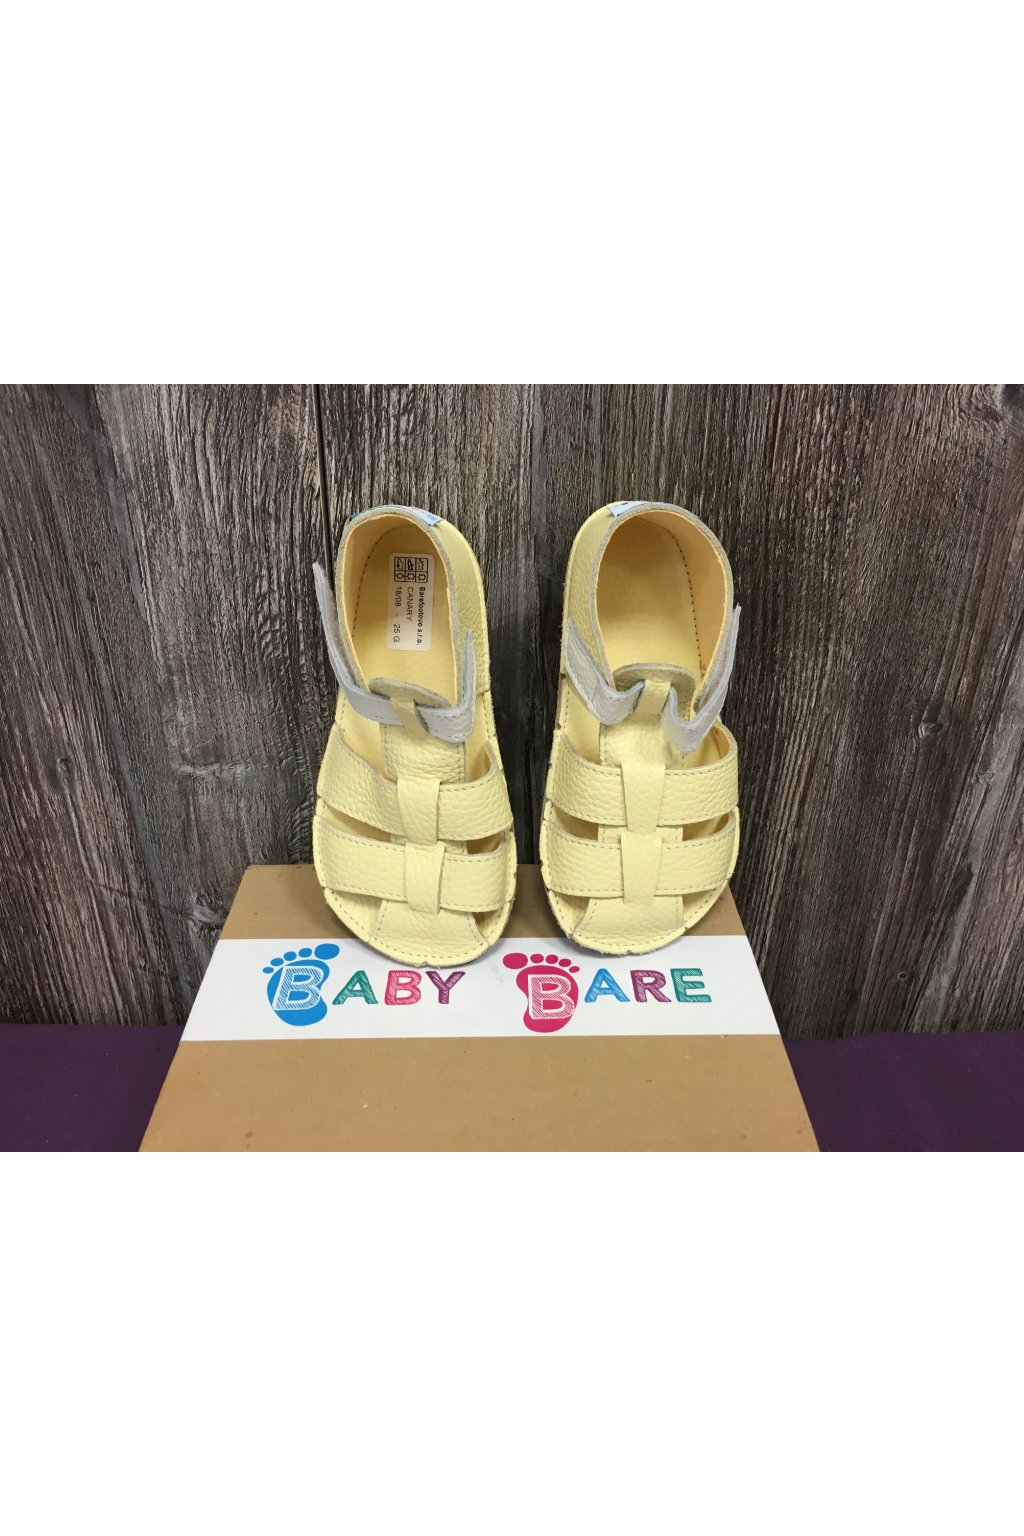 Baby Bare Shoes Canary - Sandals New 2